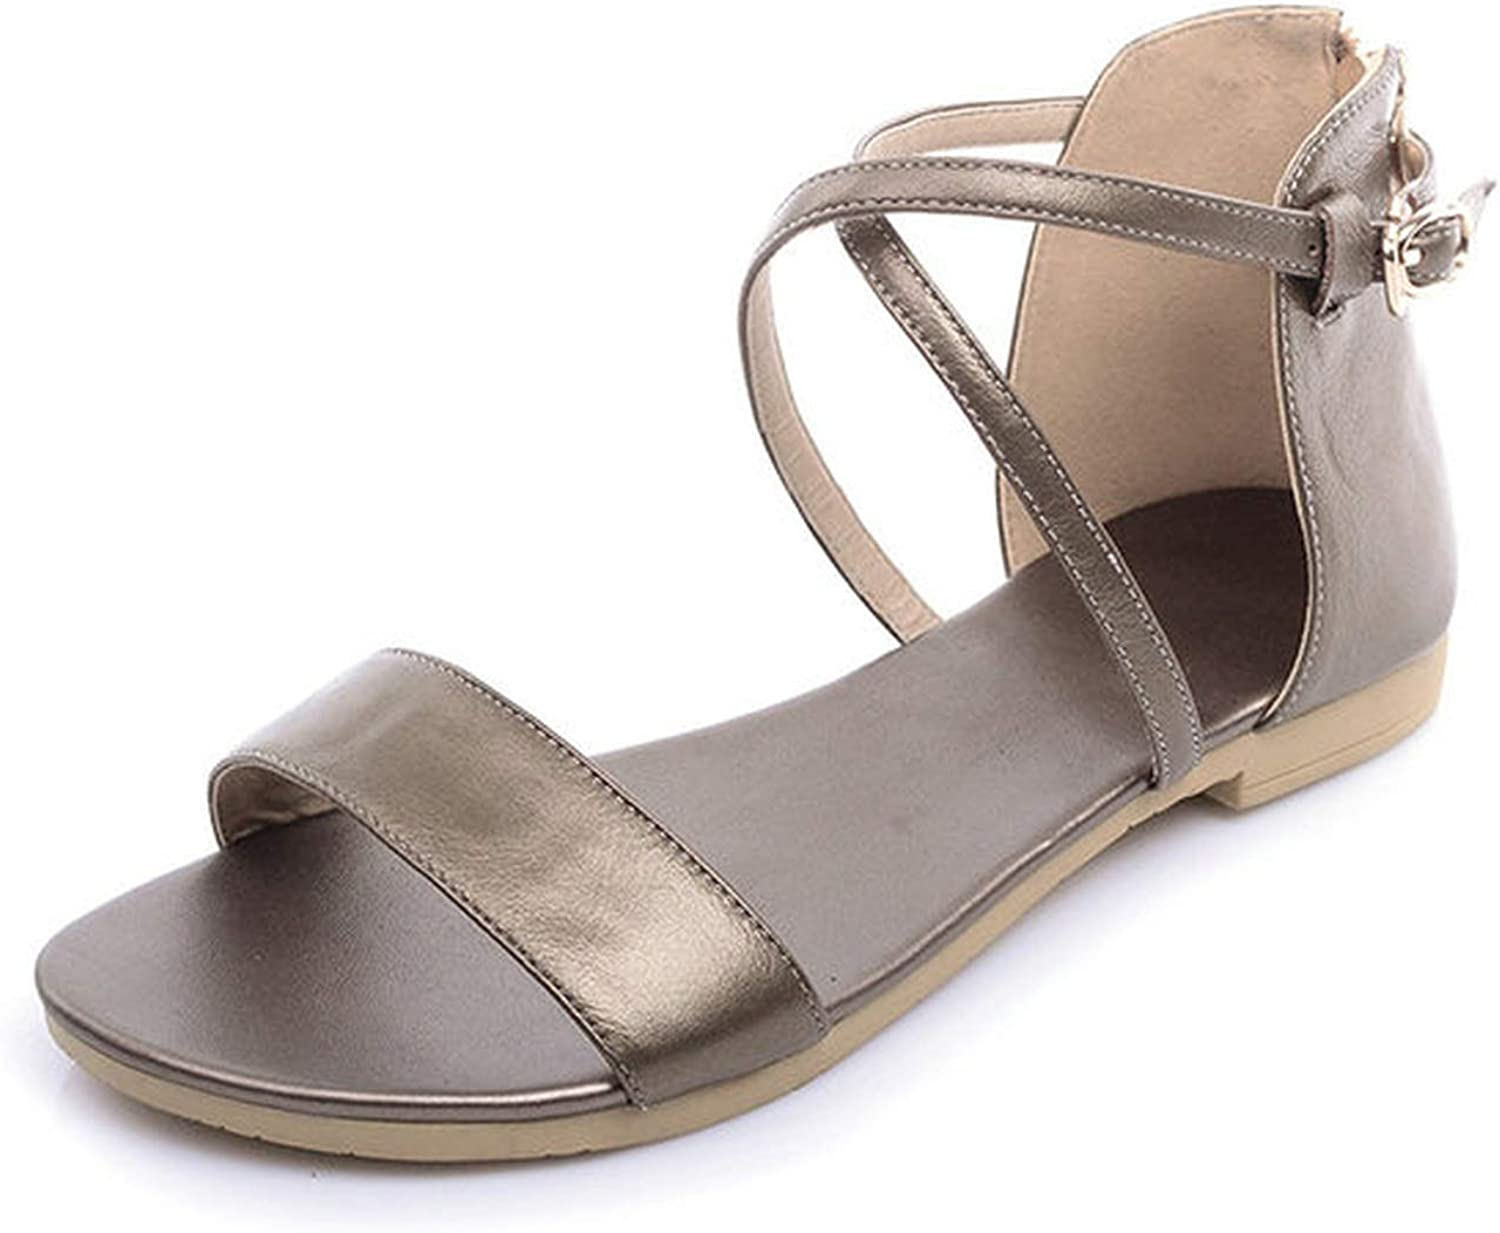 Mo Duo 100% Genuine Leather Fashion Sweet Women Flats Heel Sandals Buckle Strap Women shoes